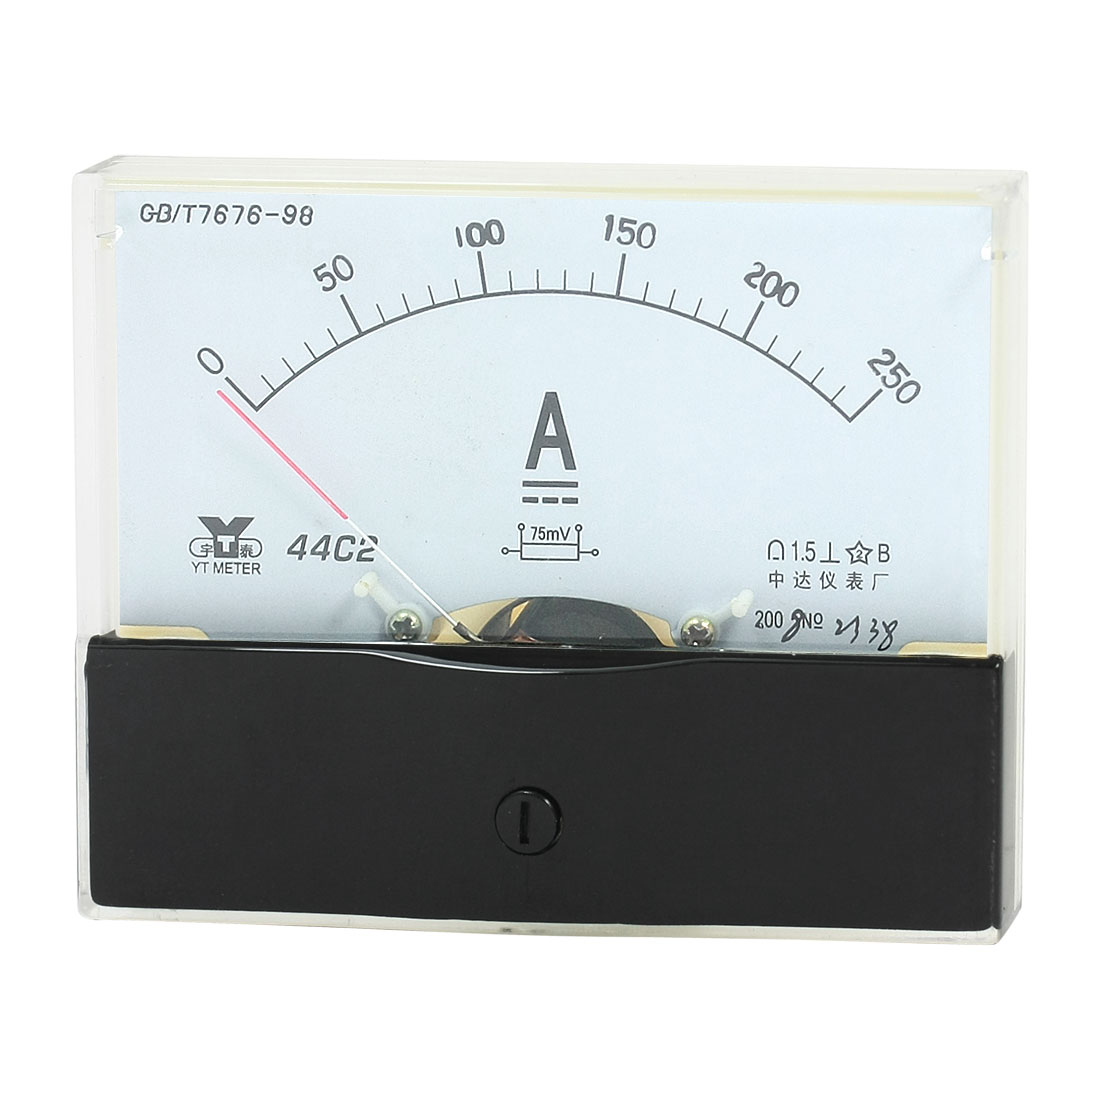 Rectangle Measurement Tool Analog Panel Ammeter Gauge DC 0 - 250A Measuring Range 44C2